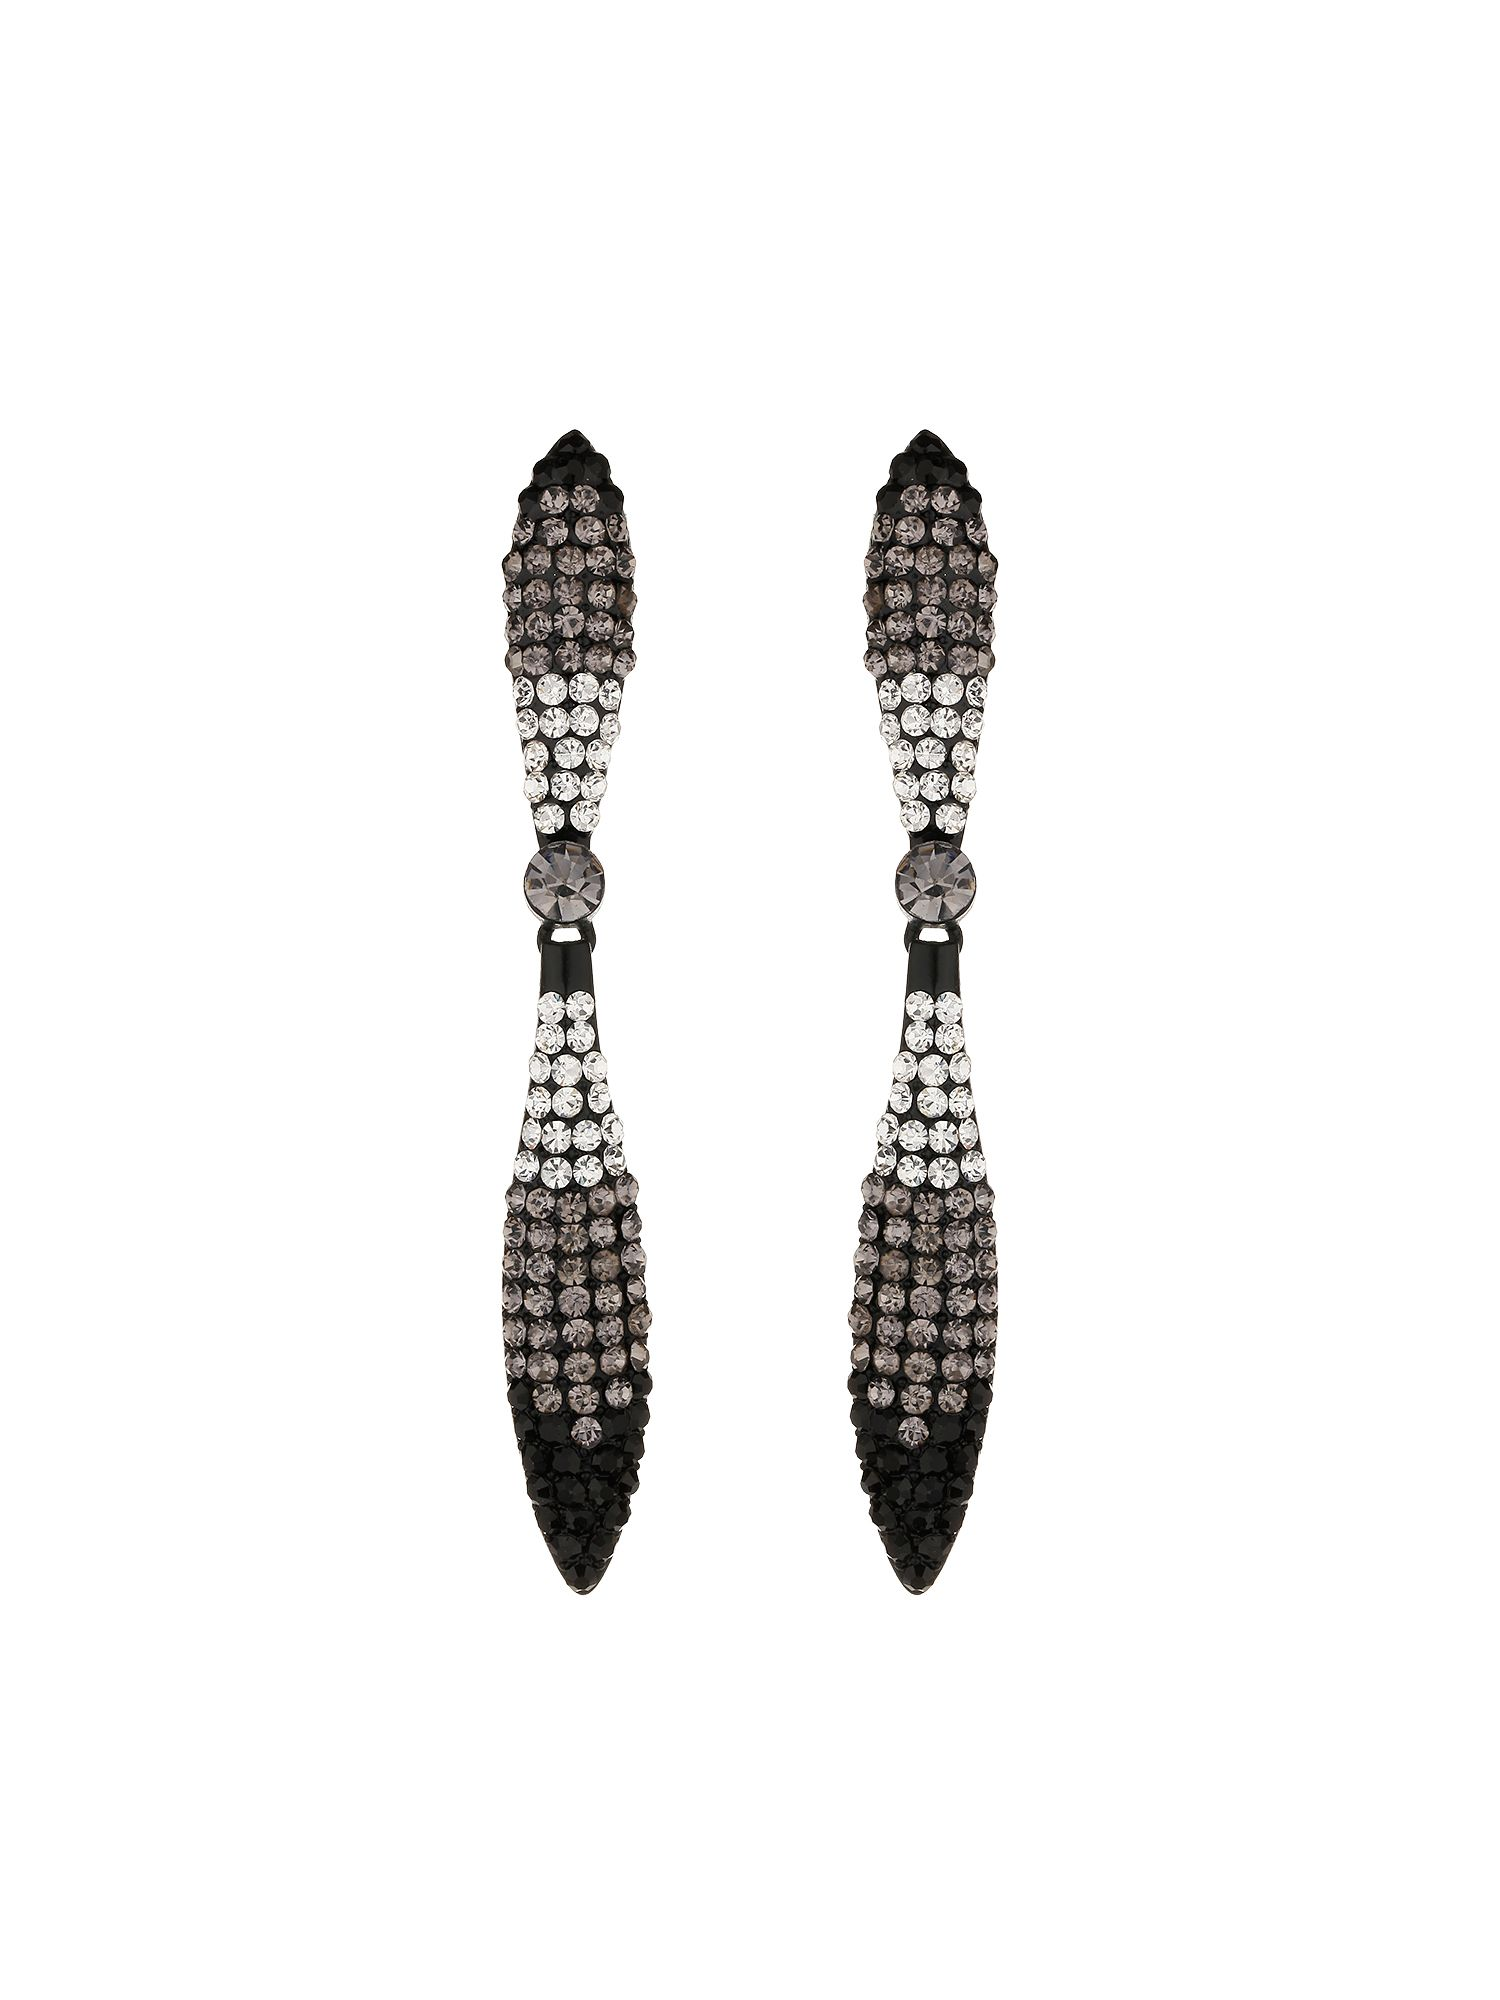 Long knife earrings